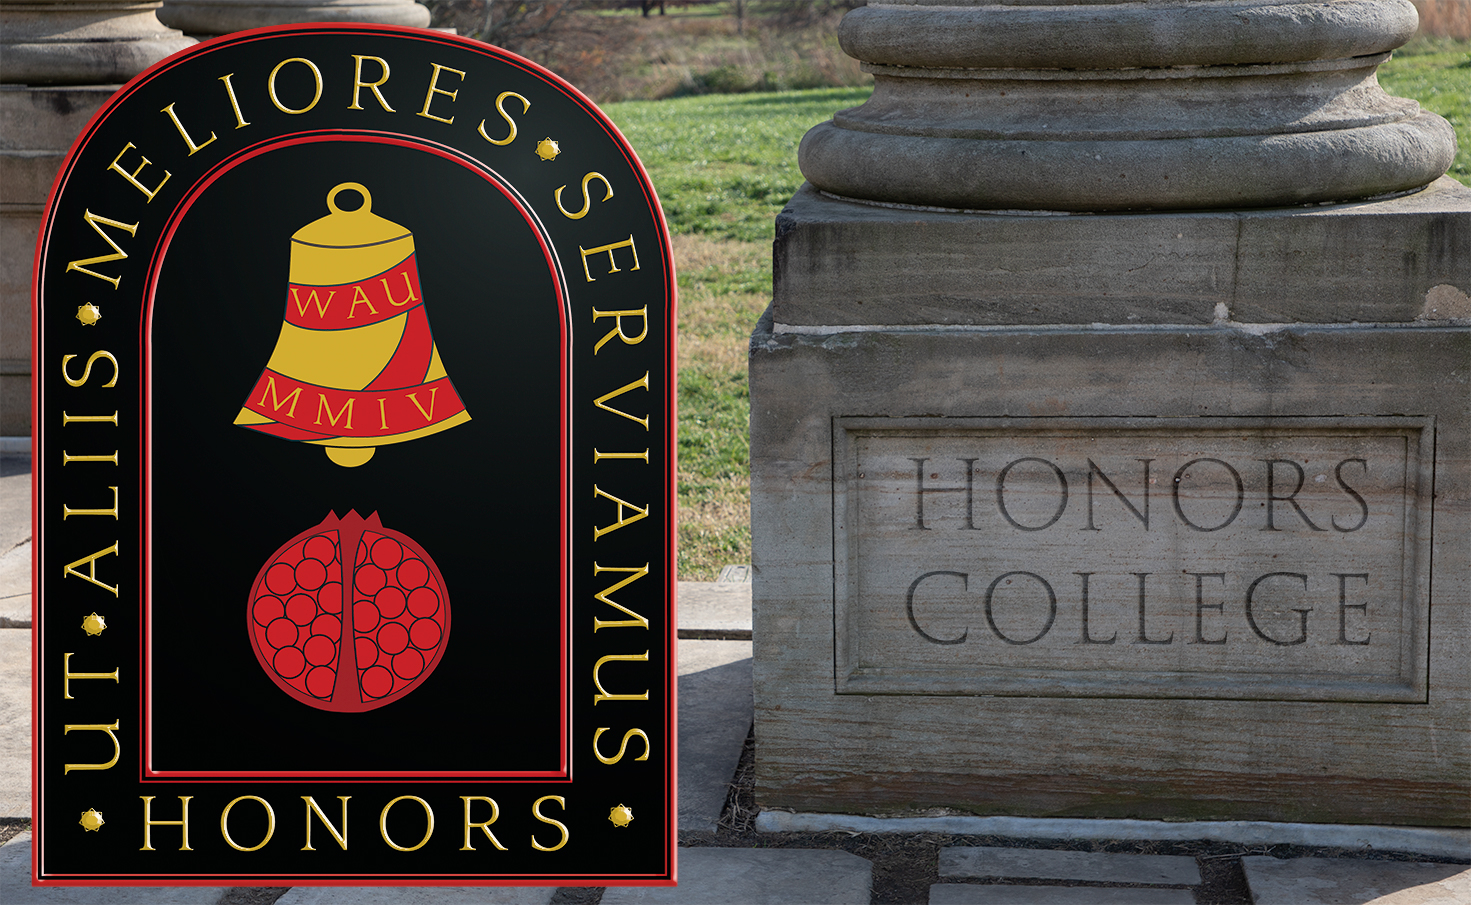 Honors College Image with Pillar Base